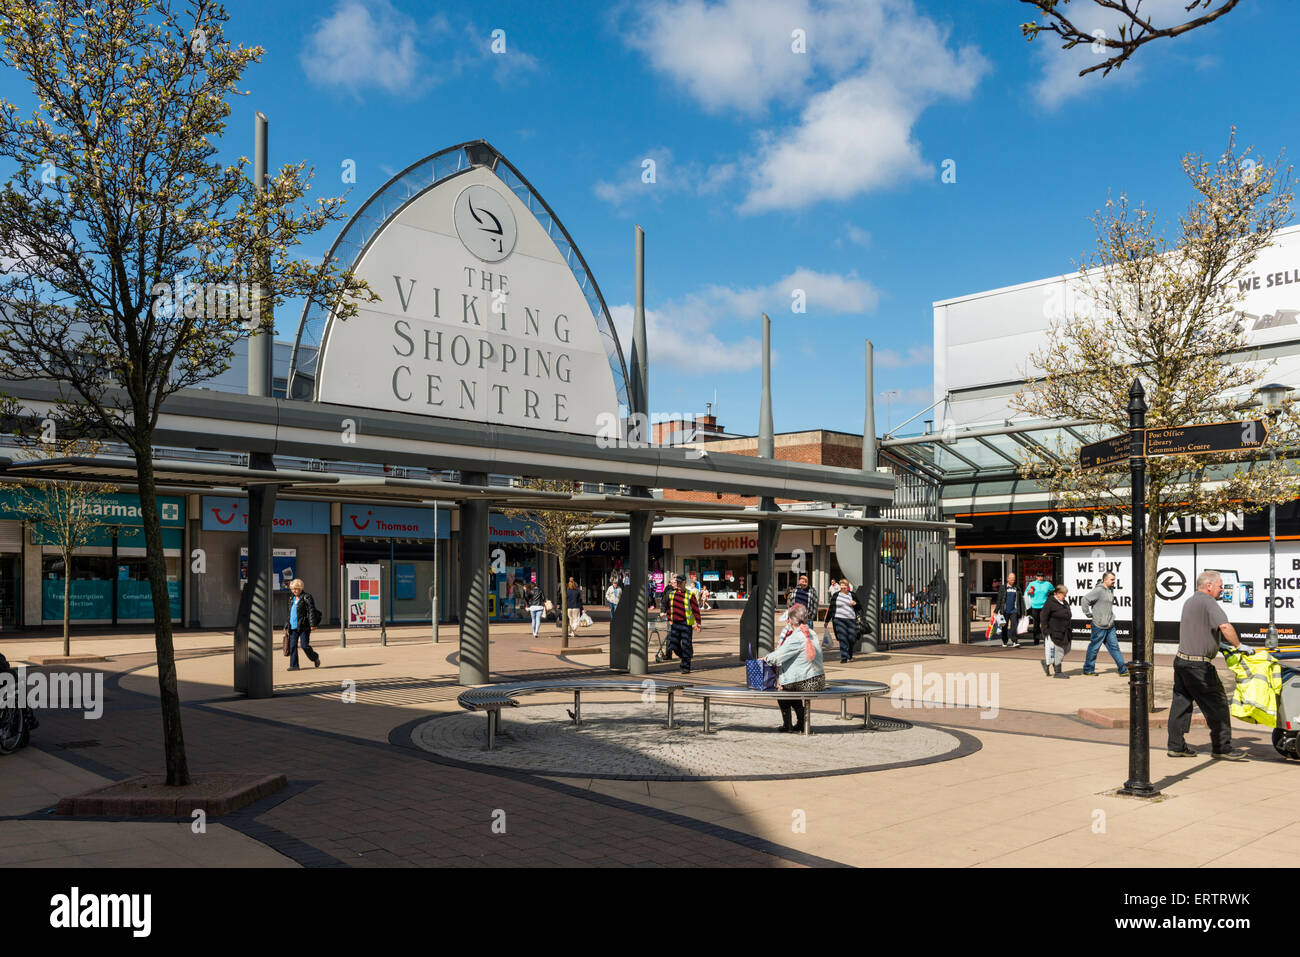 The Viking Shopping Centre, Jarrow, Tyne and Wear, England, UK - Stock Image